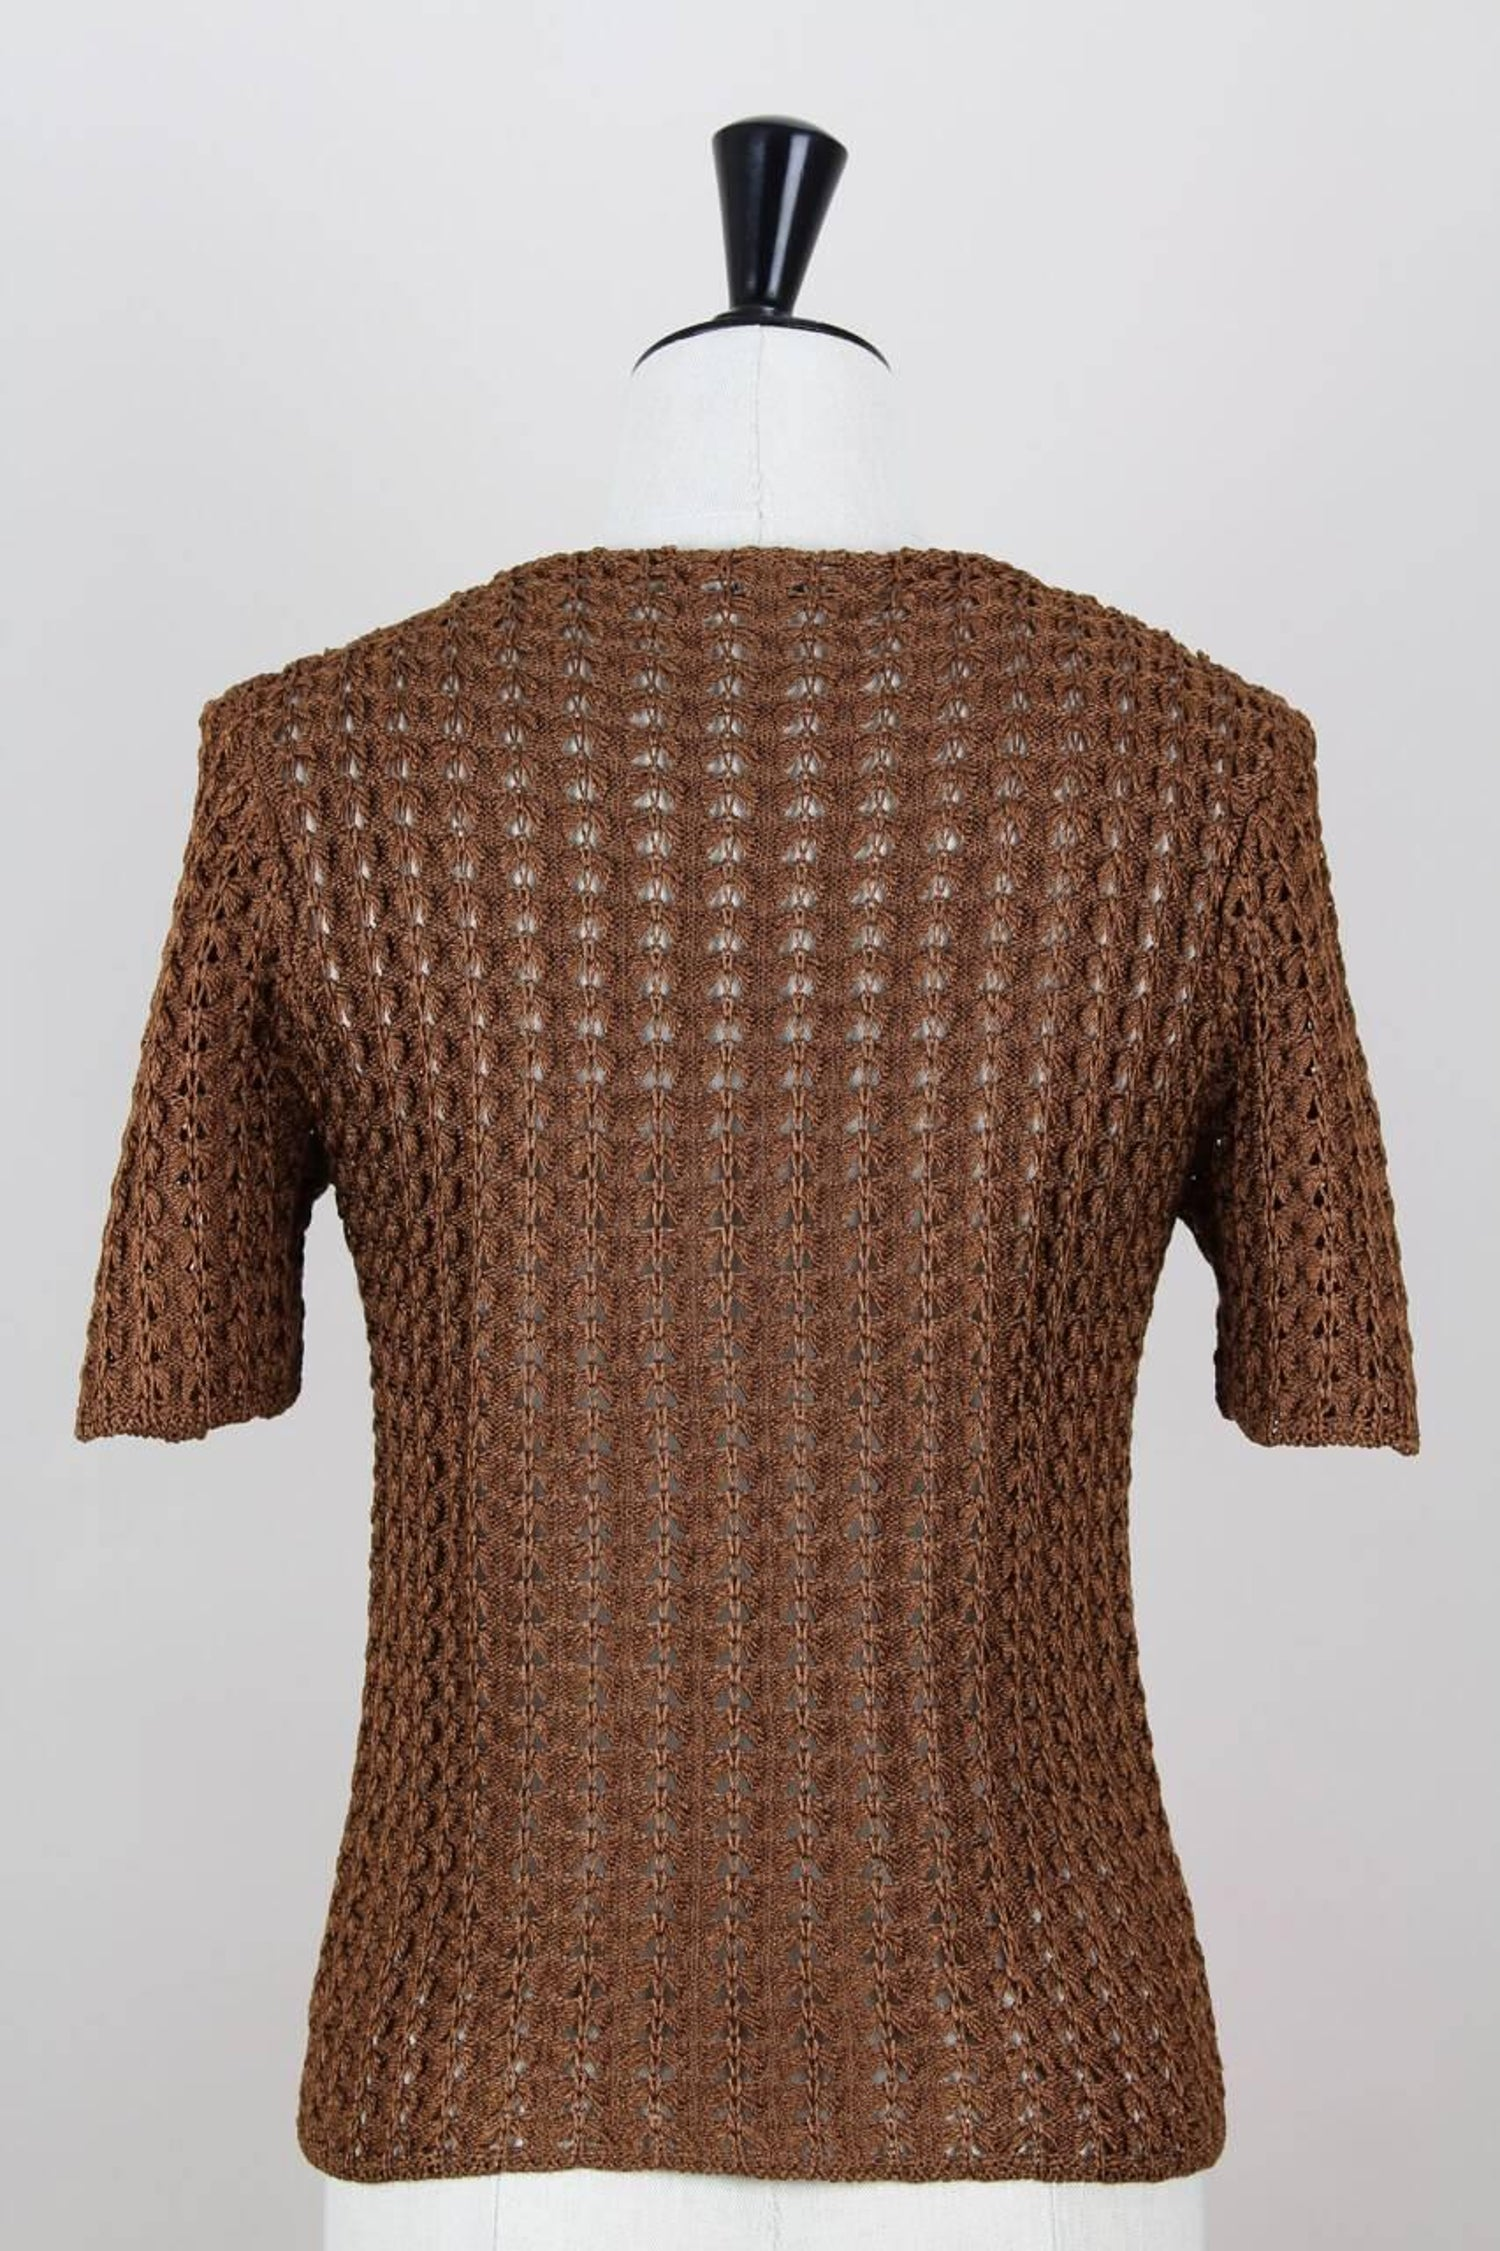 9a3ccc88cad2e1 Yves Saint Laurent YSL Brown Openwork Knit Pullover Sweater Top, 1980s For  Sale at 1stdibs